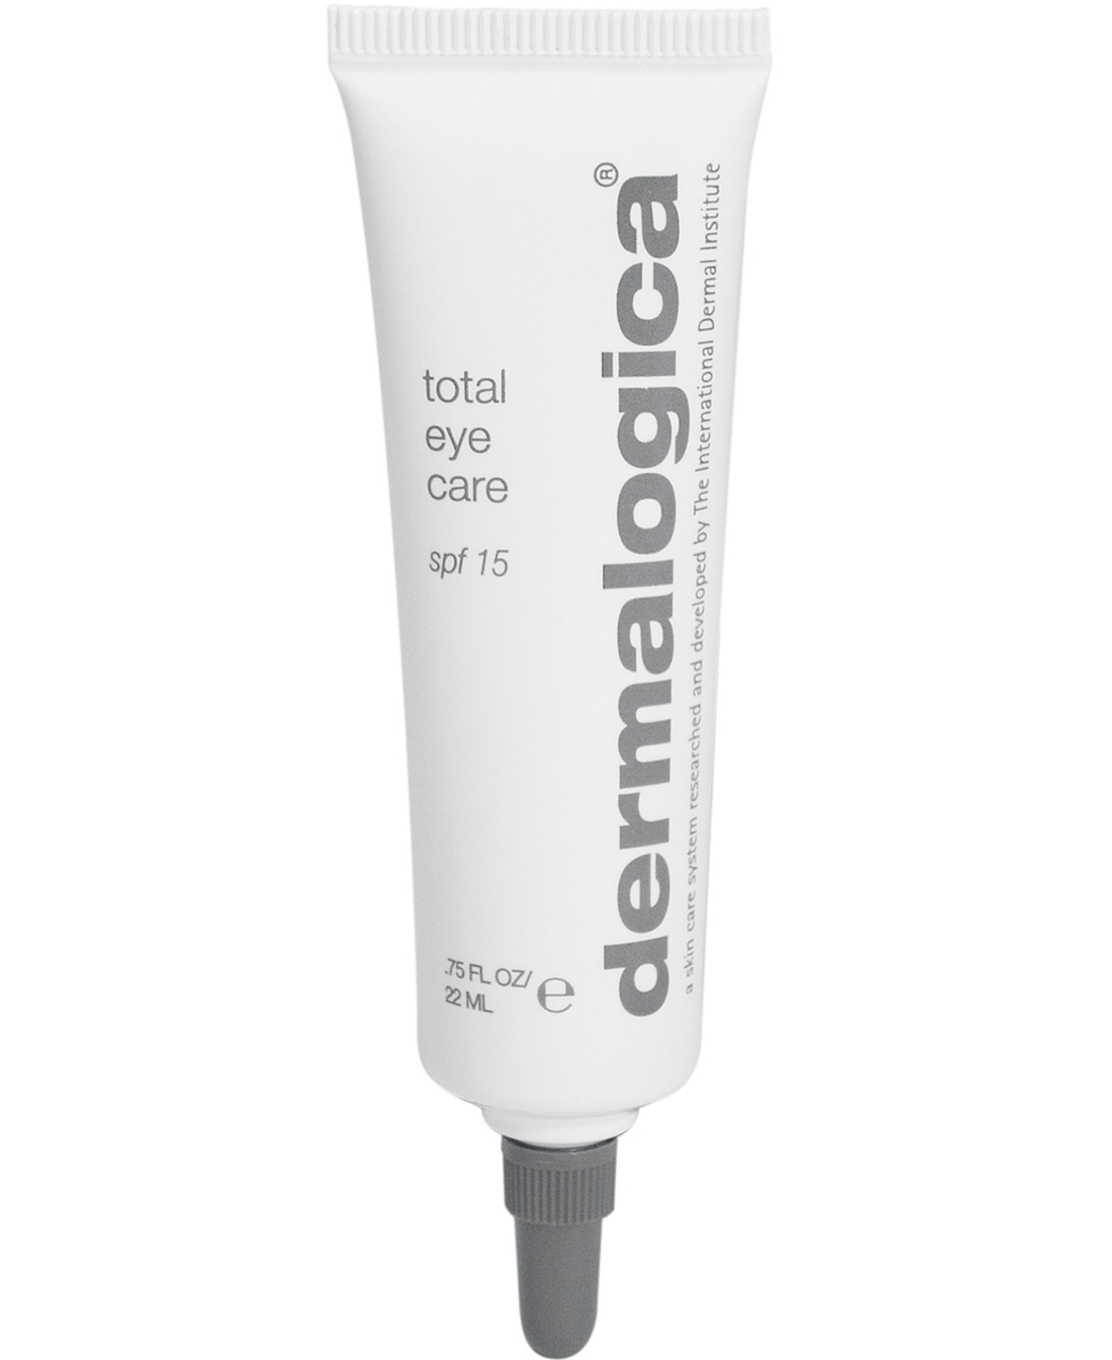 dermalogica - Greyline Total Eye Care 15 ml